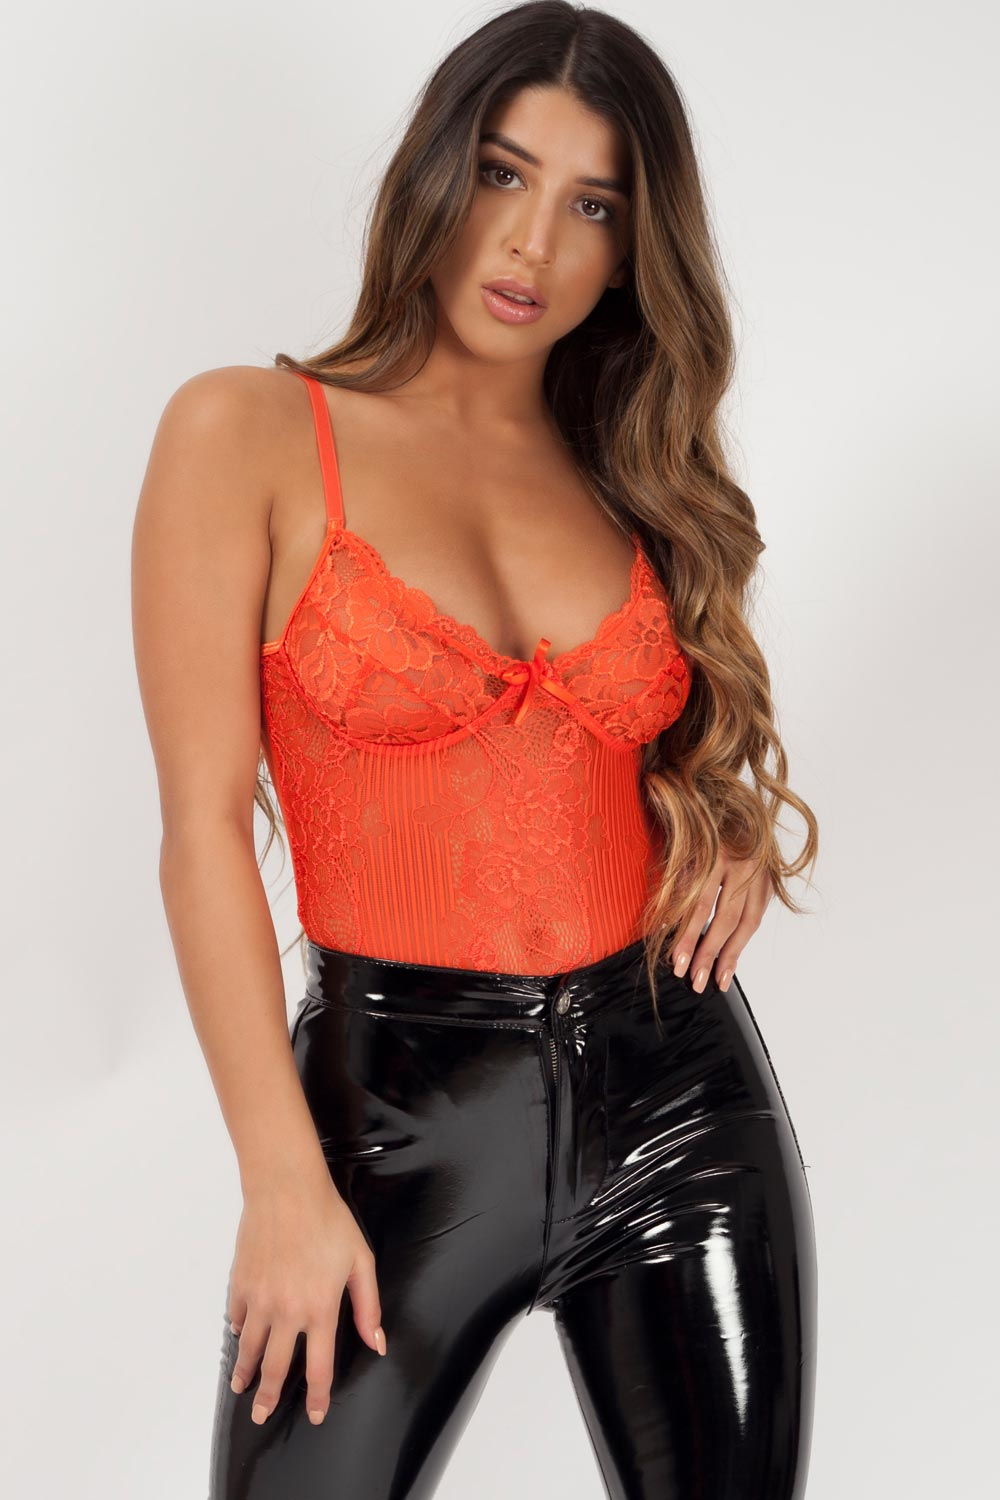 orange lace bodysuit styledup fashion